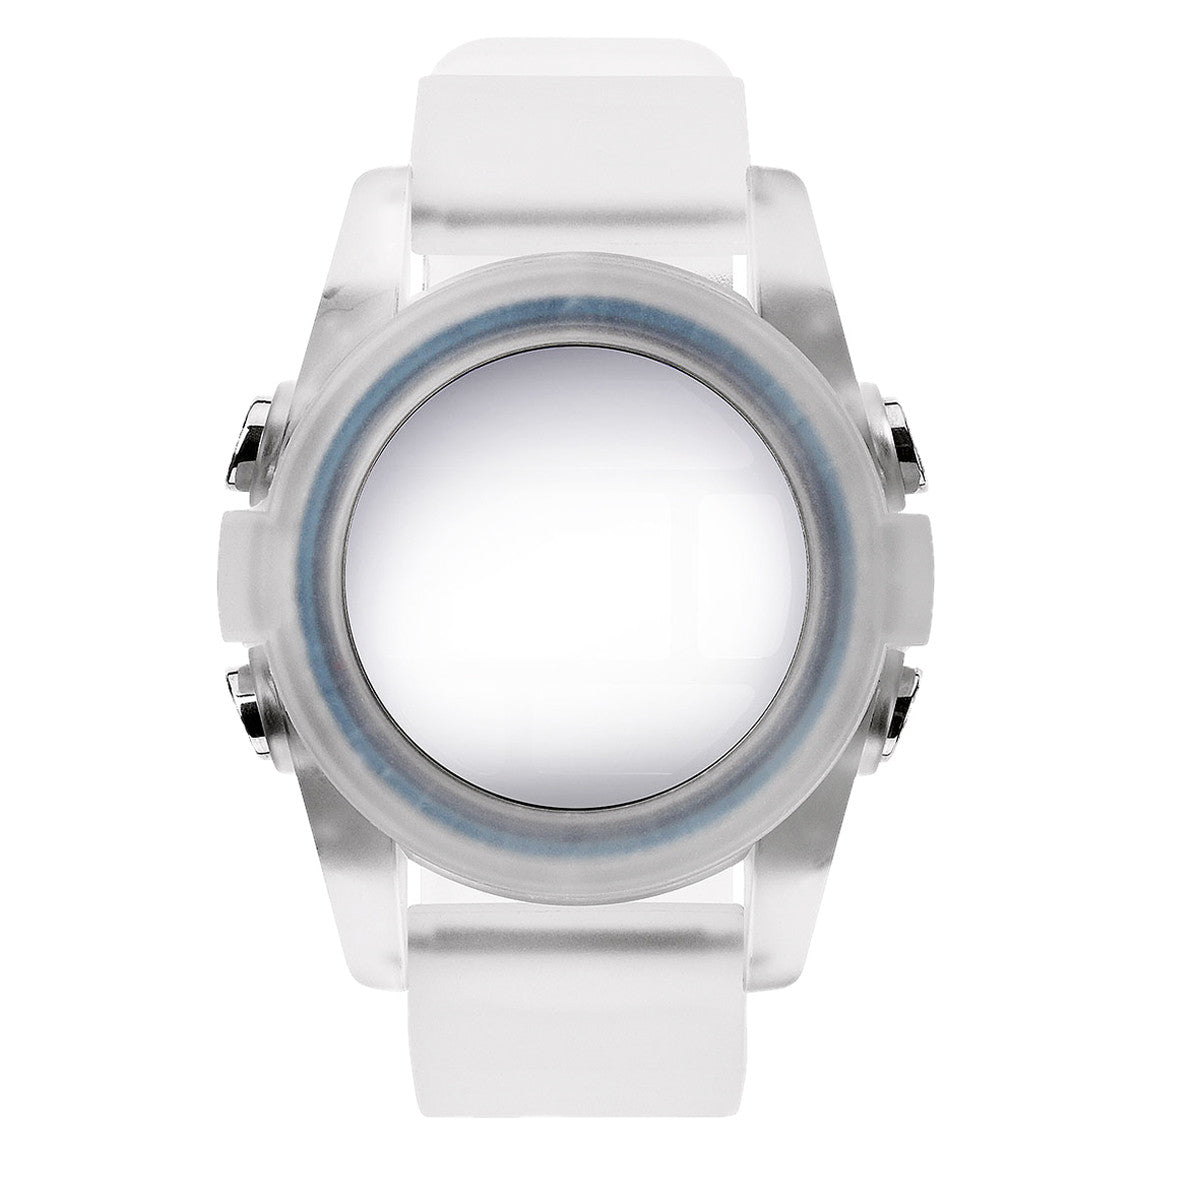 clear watches product lyst in time translucent metallic nixon watch accessories normal small teller gallery